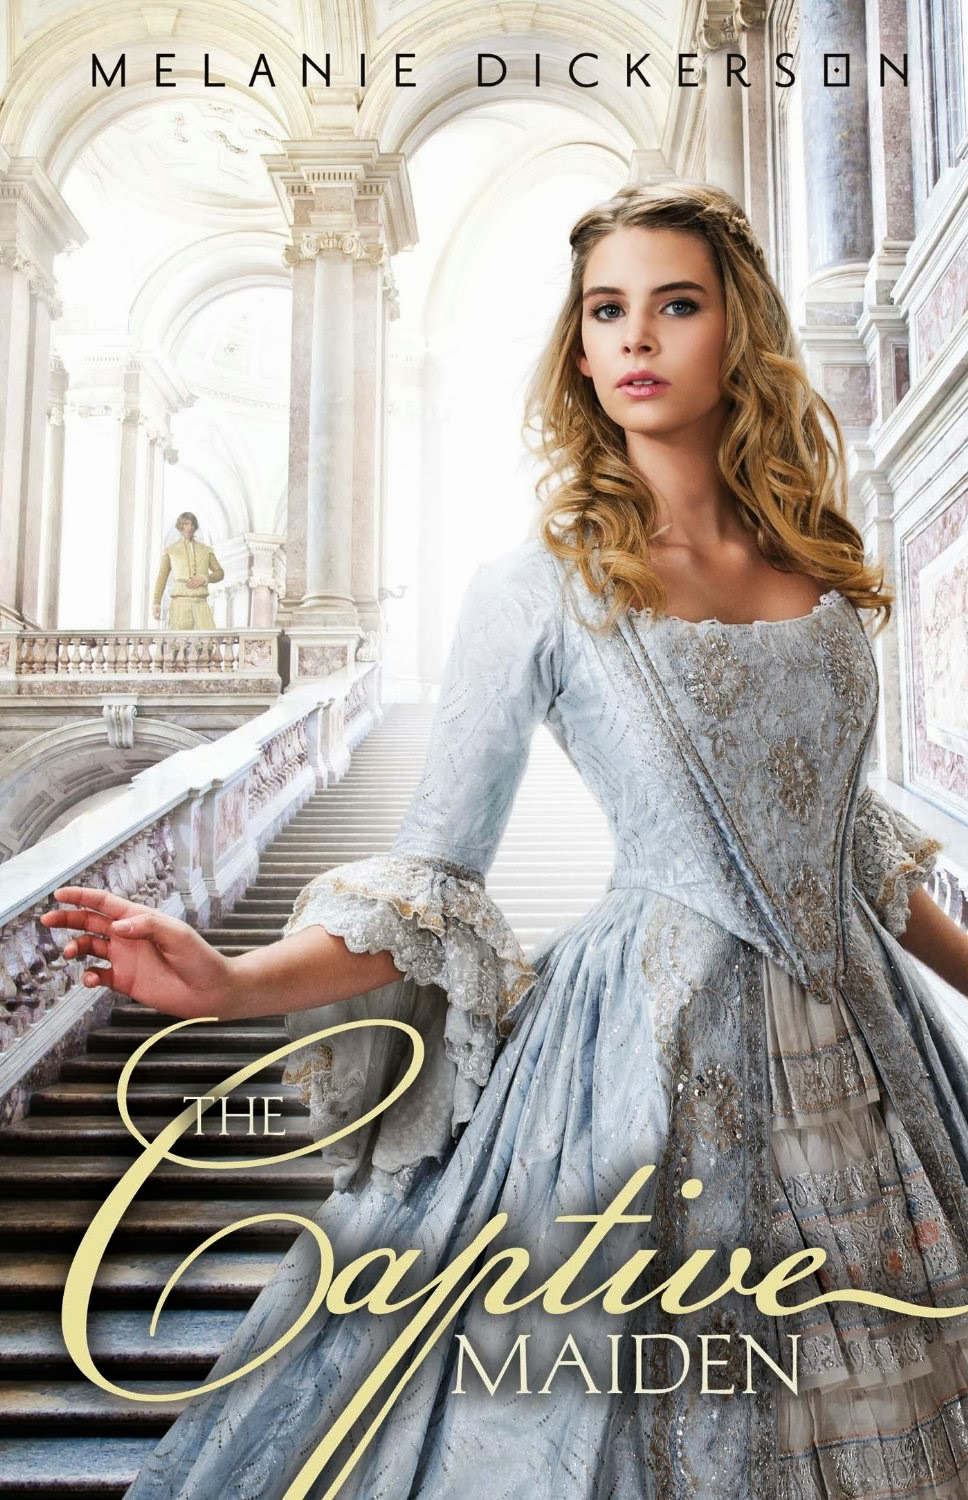 """melanie dickerson s the captive maiden Once upon a time, i signed up to win a copy of melanie dickerson's """"the captive maiden"""" and i won melanie dickerson's characters are simply astonishing."""